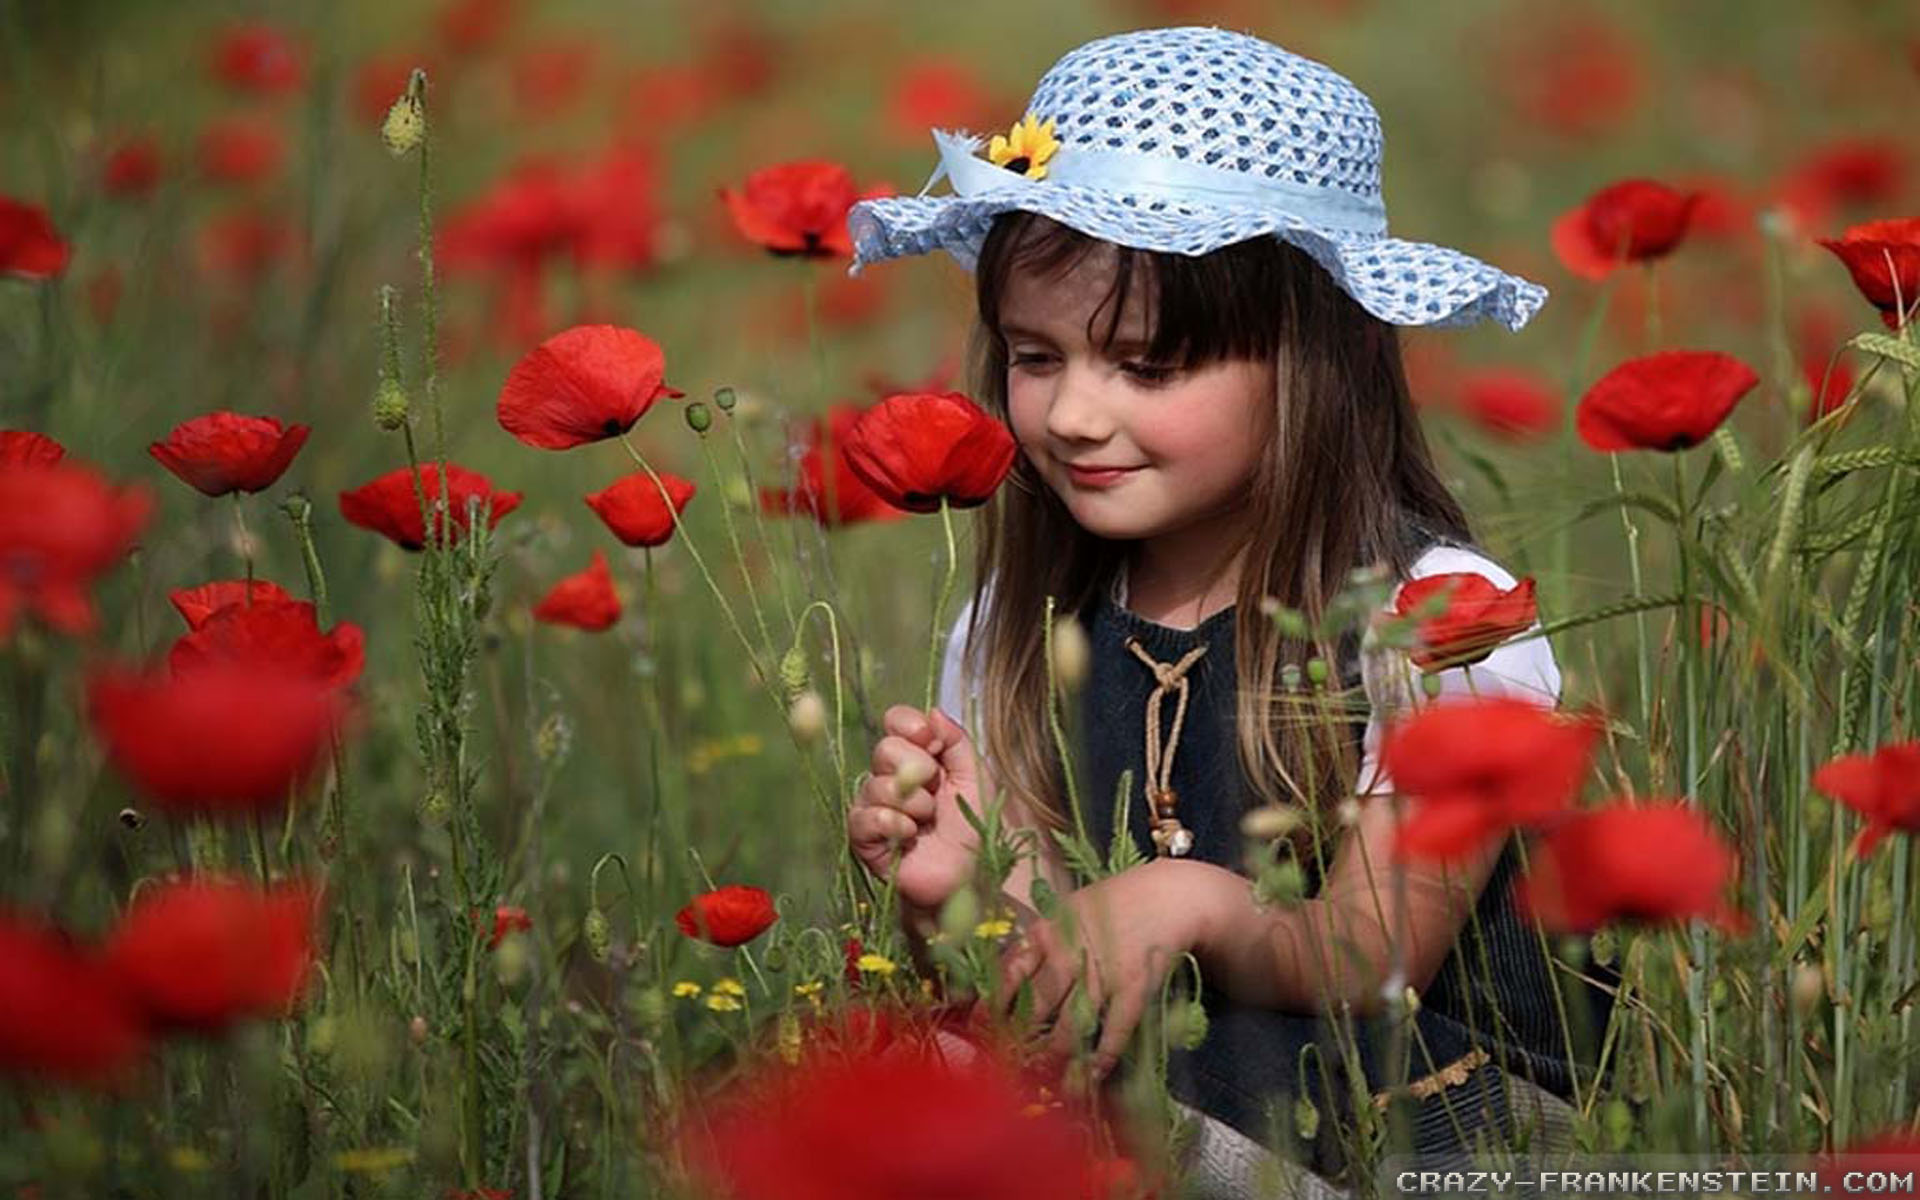 Cute Baby Girl Pics For Facebook Profile Flower Cute Baby 1920x1200 Download Hd Wallpaper Wallpapertip